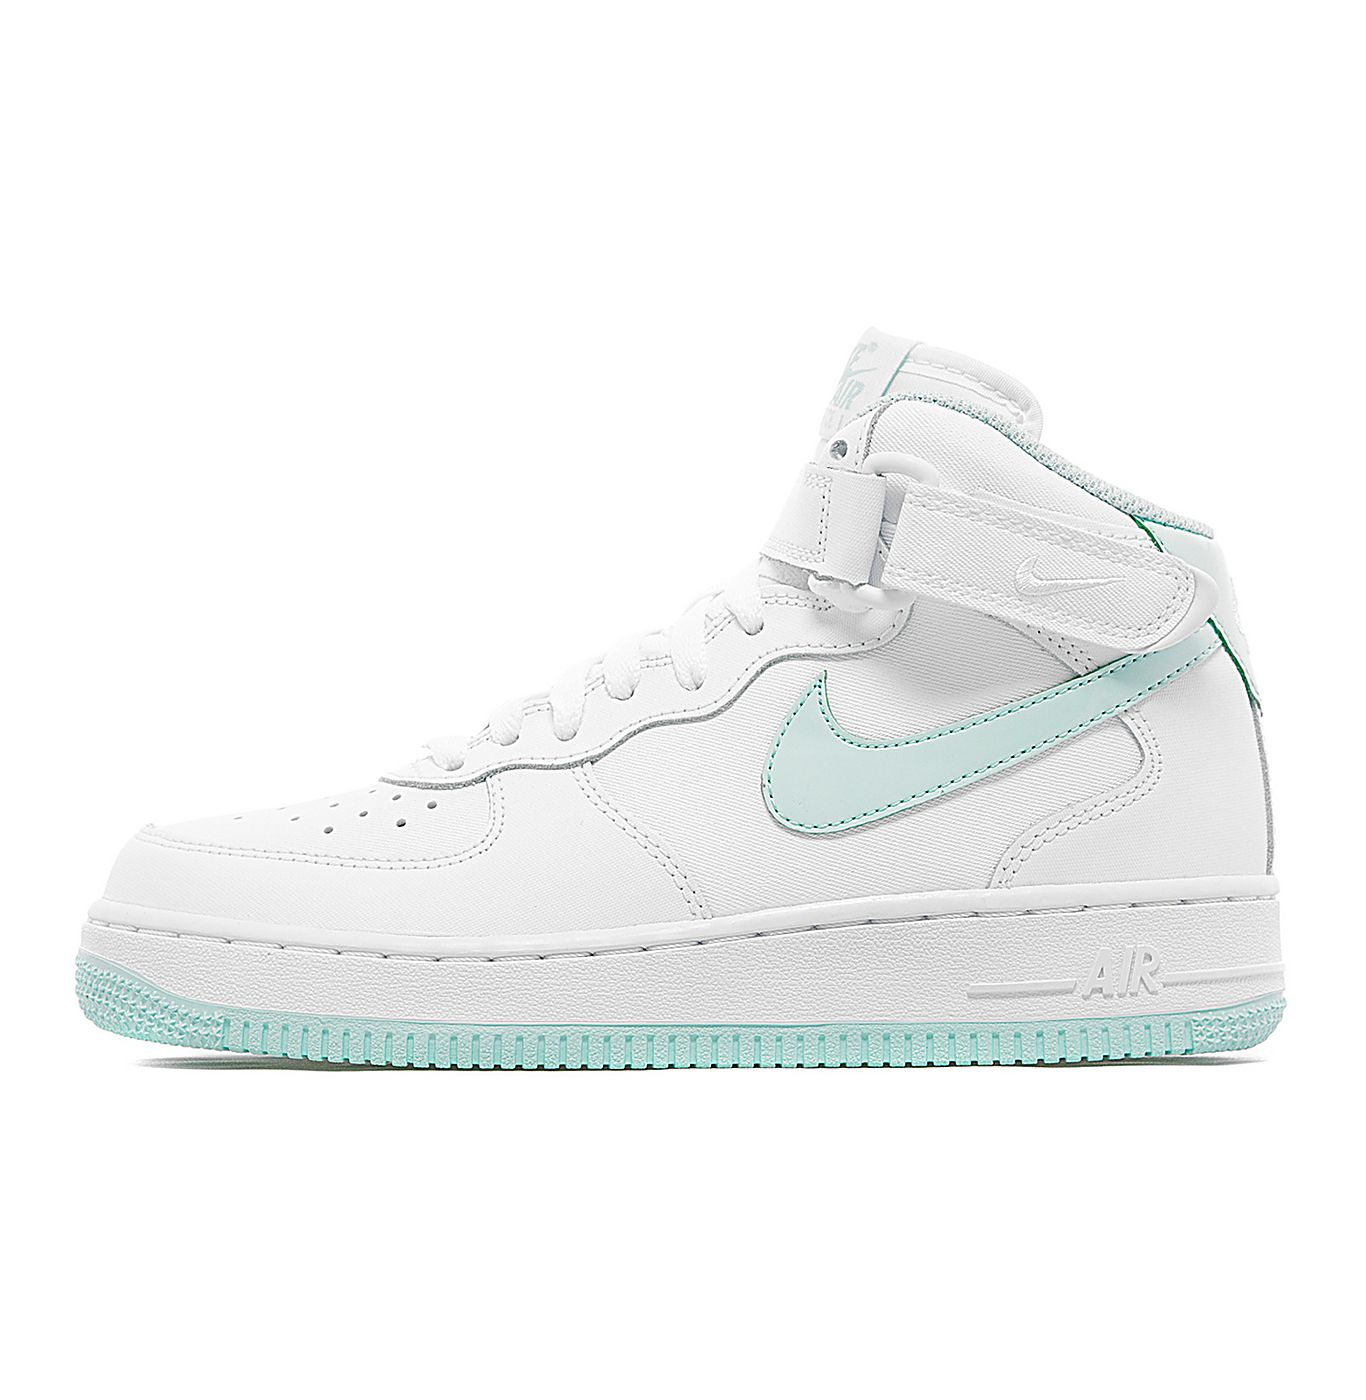 nike five forces Free essay: family name bao first name cheng ( steven ) title: the analysis of nike in athletic footwear market based on porter's five forces model 1.